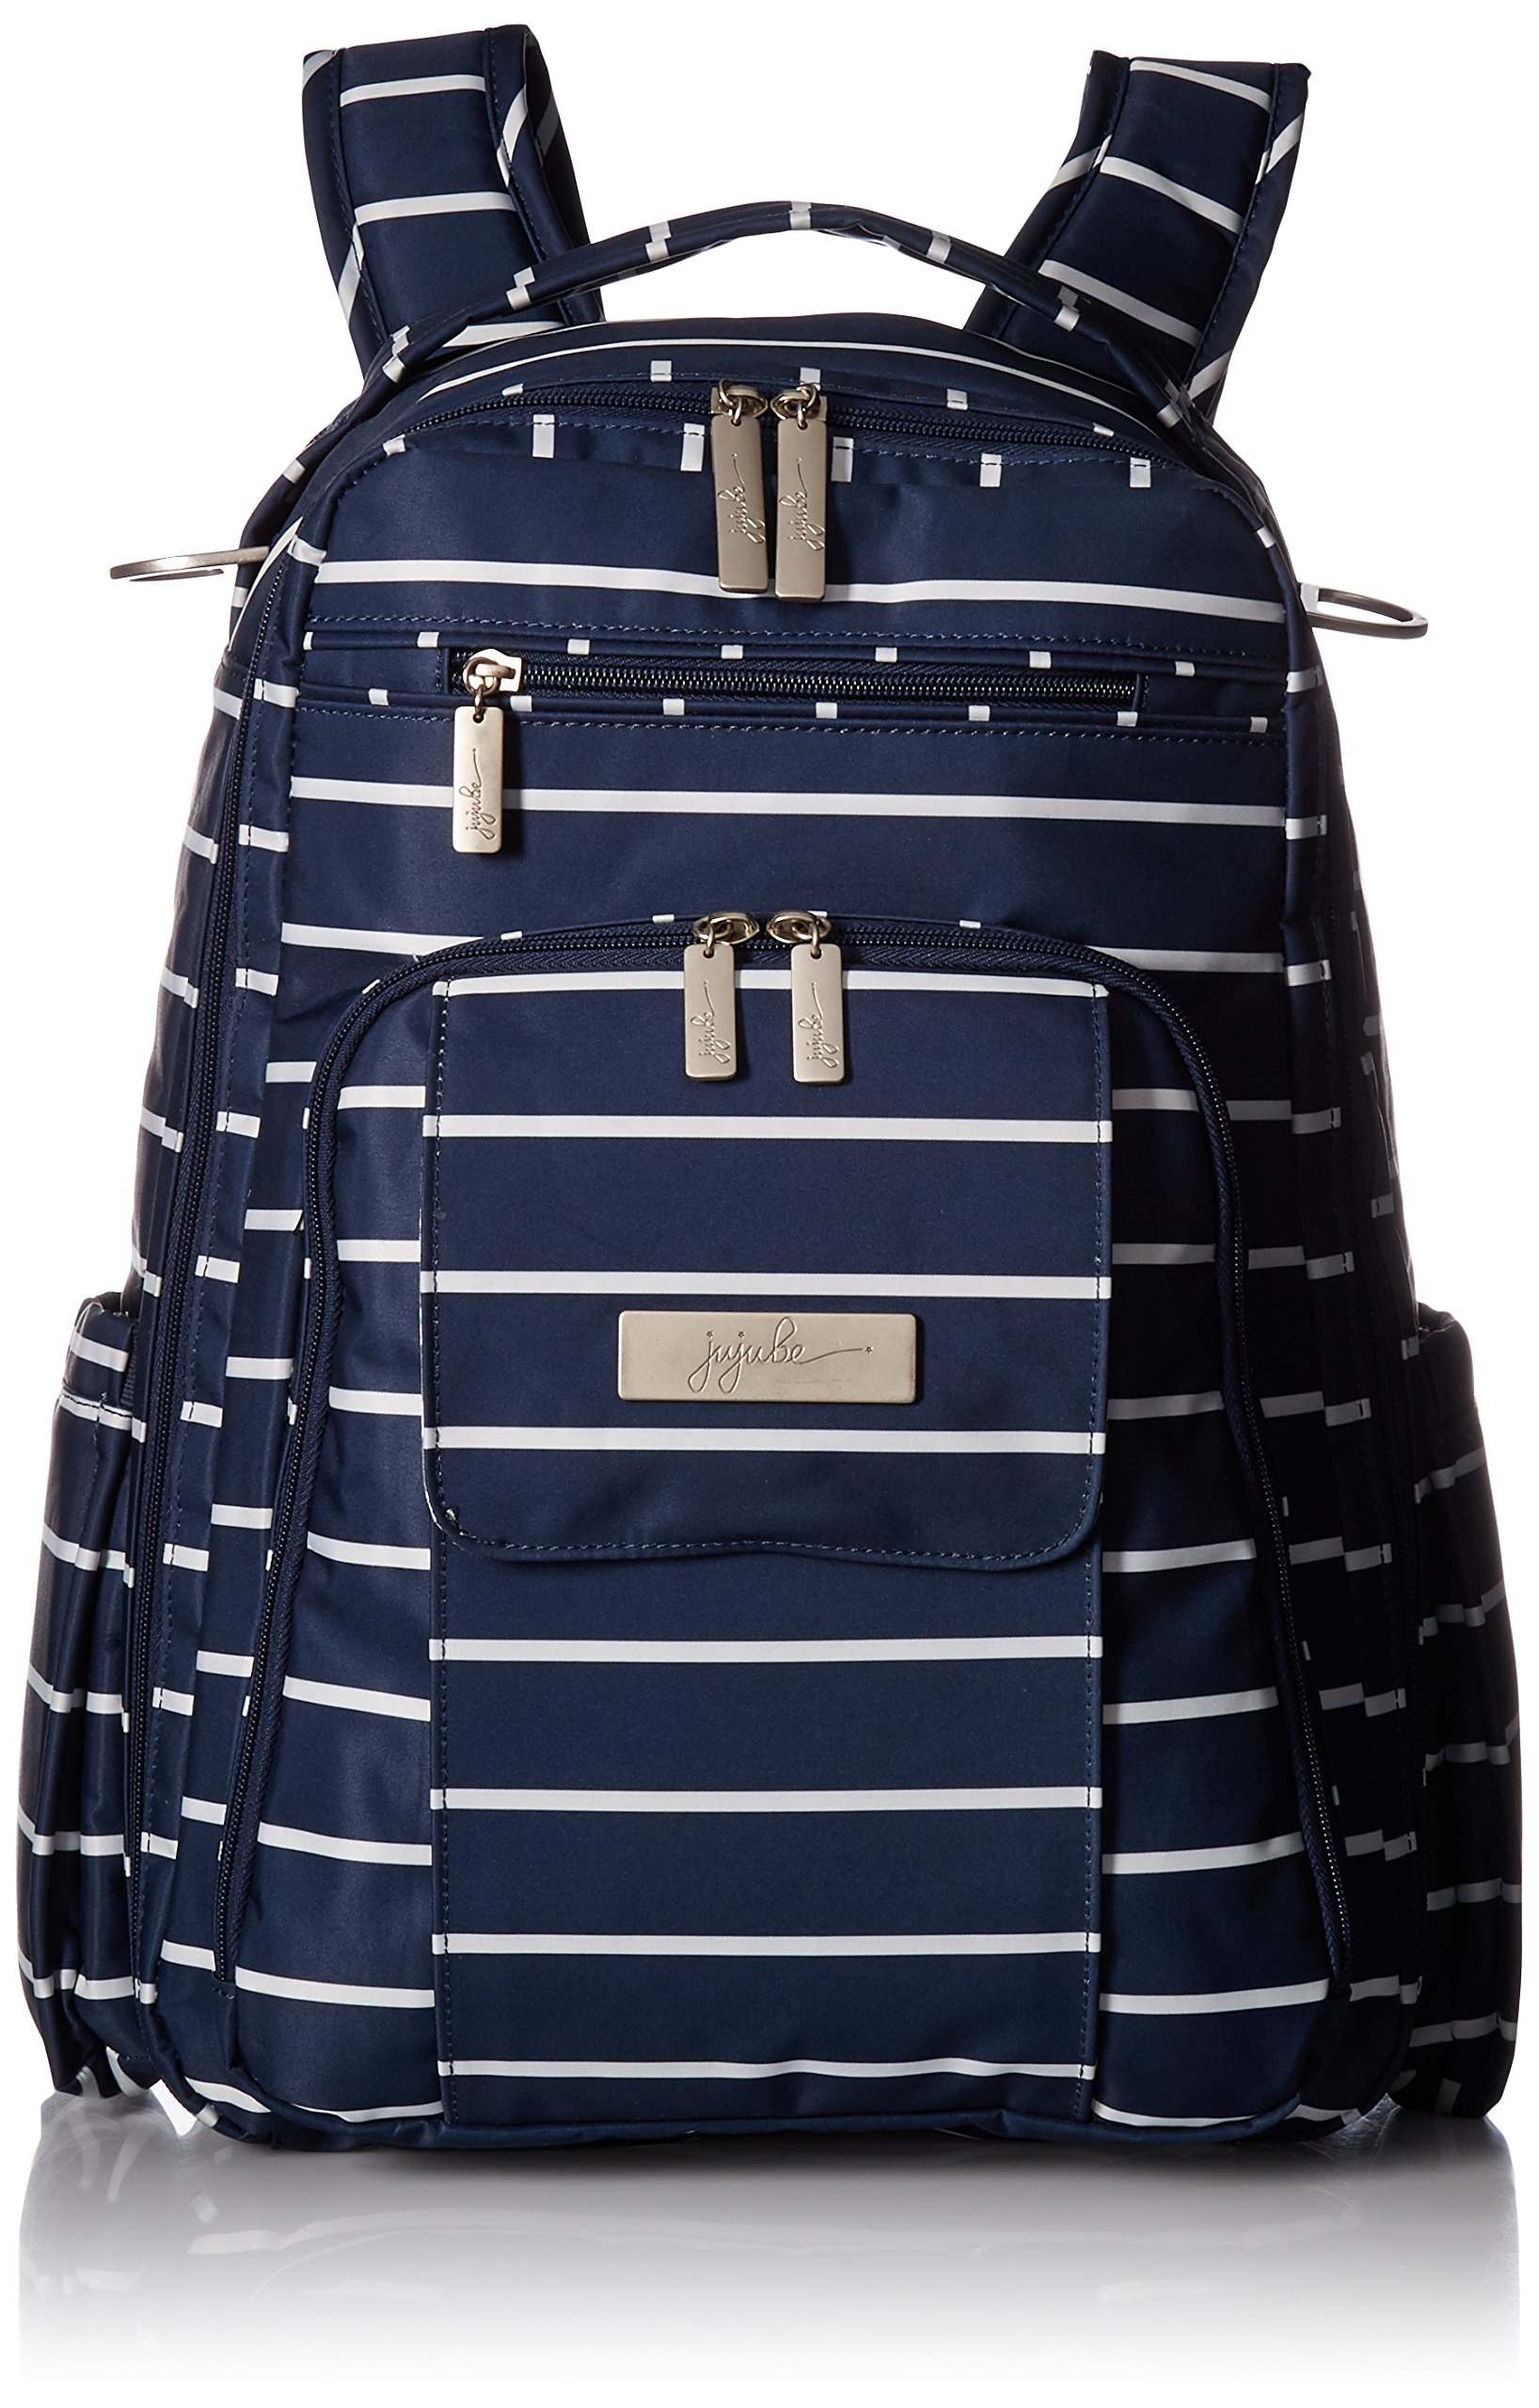 Ju-Ju-Be Coastal Collection Be Right Back Backpack Diaper Bag, Nantucket